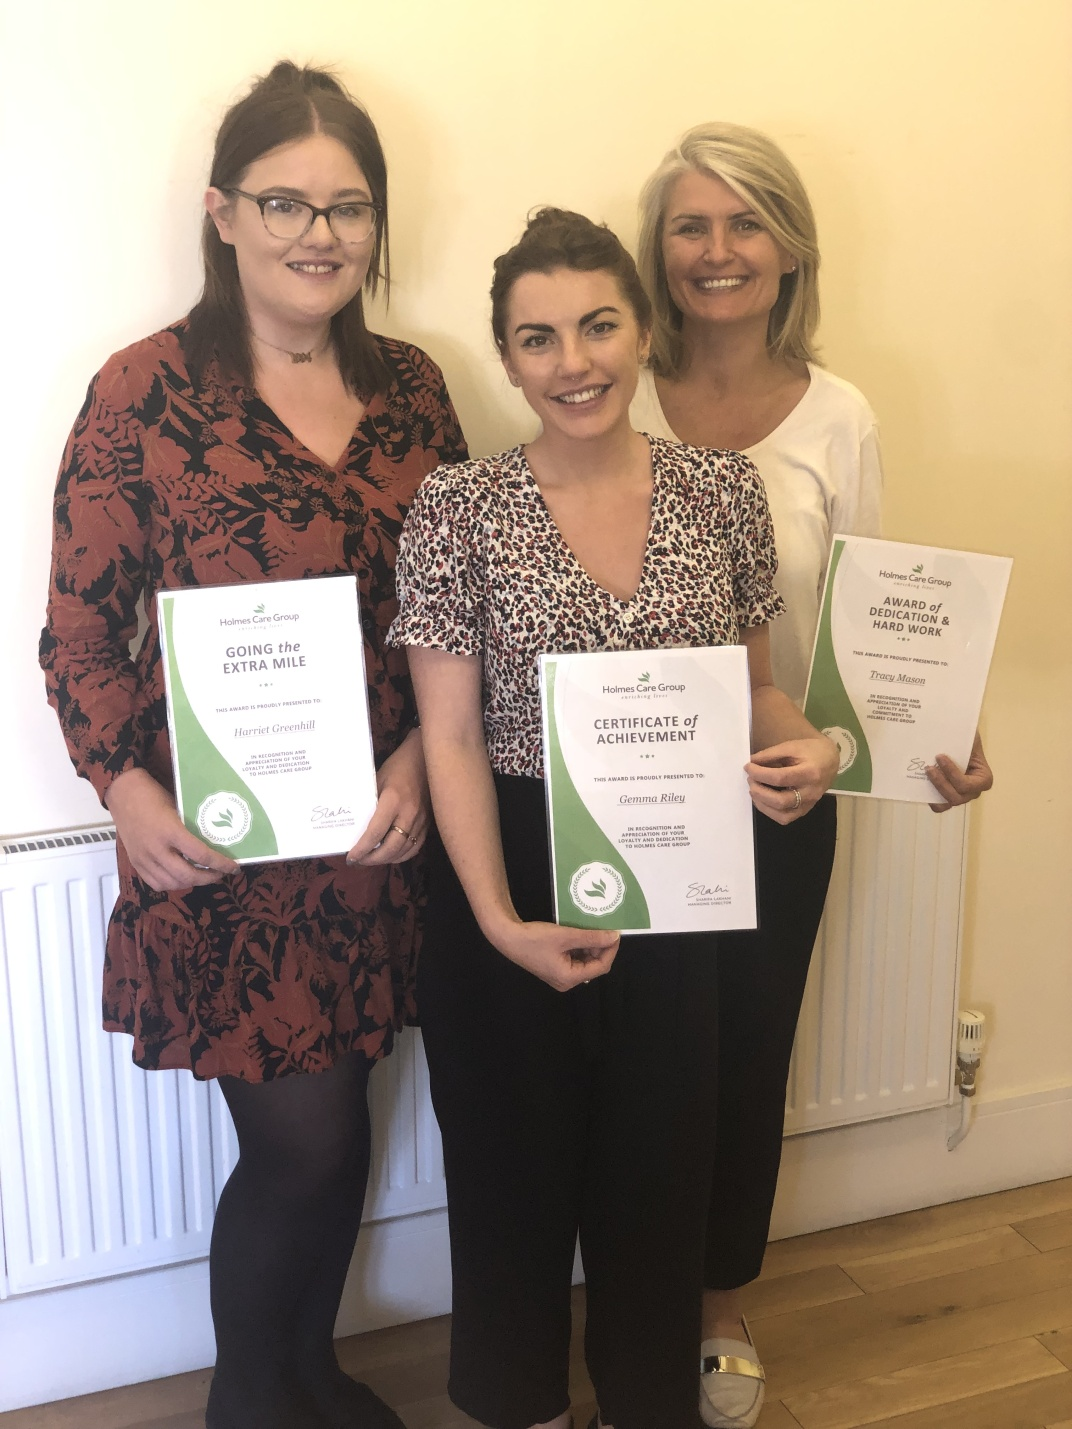 Harriet Greenhill, Gemma Riley and Tracy Mason - Head Office